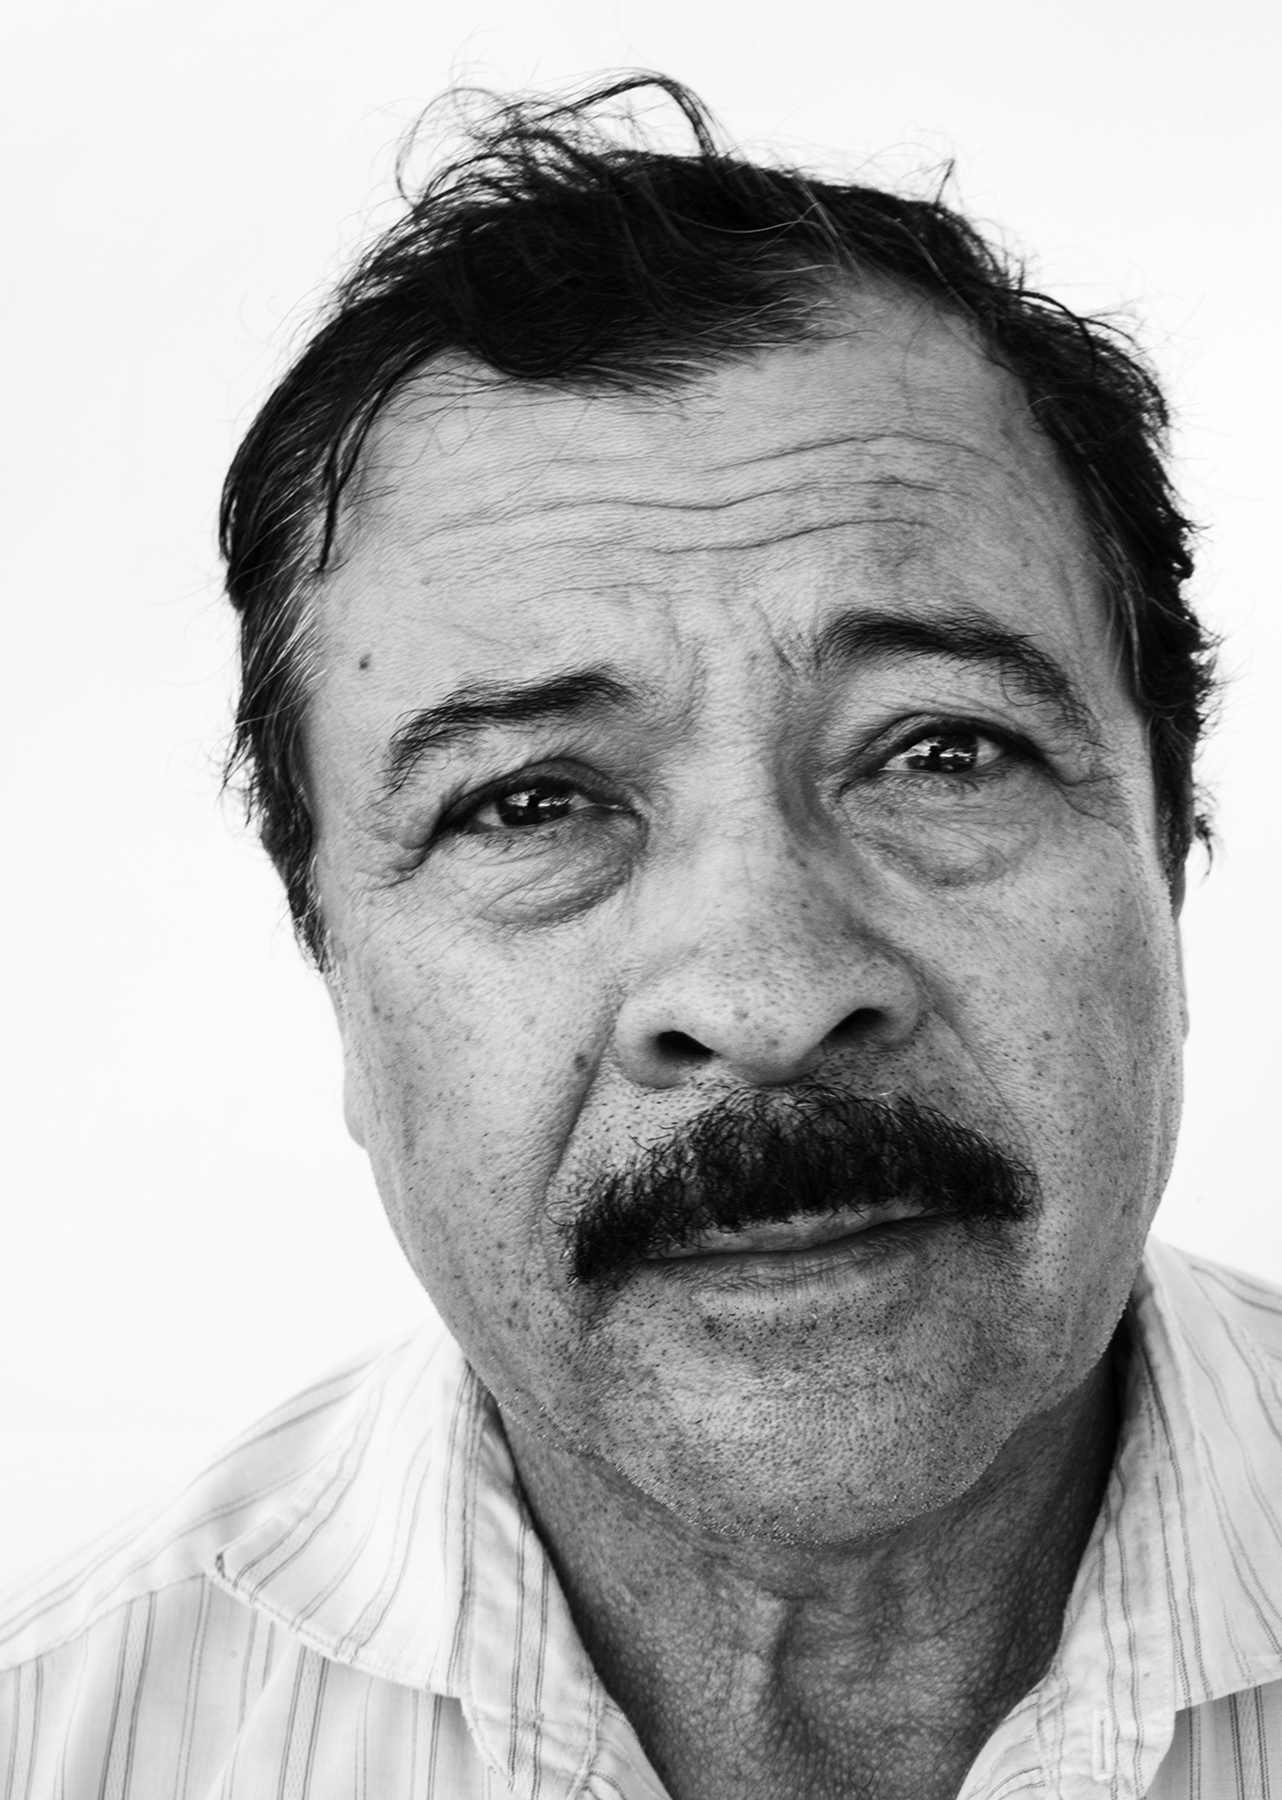 Jose Galaviz, 62, Nayarit, Mexico.